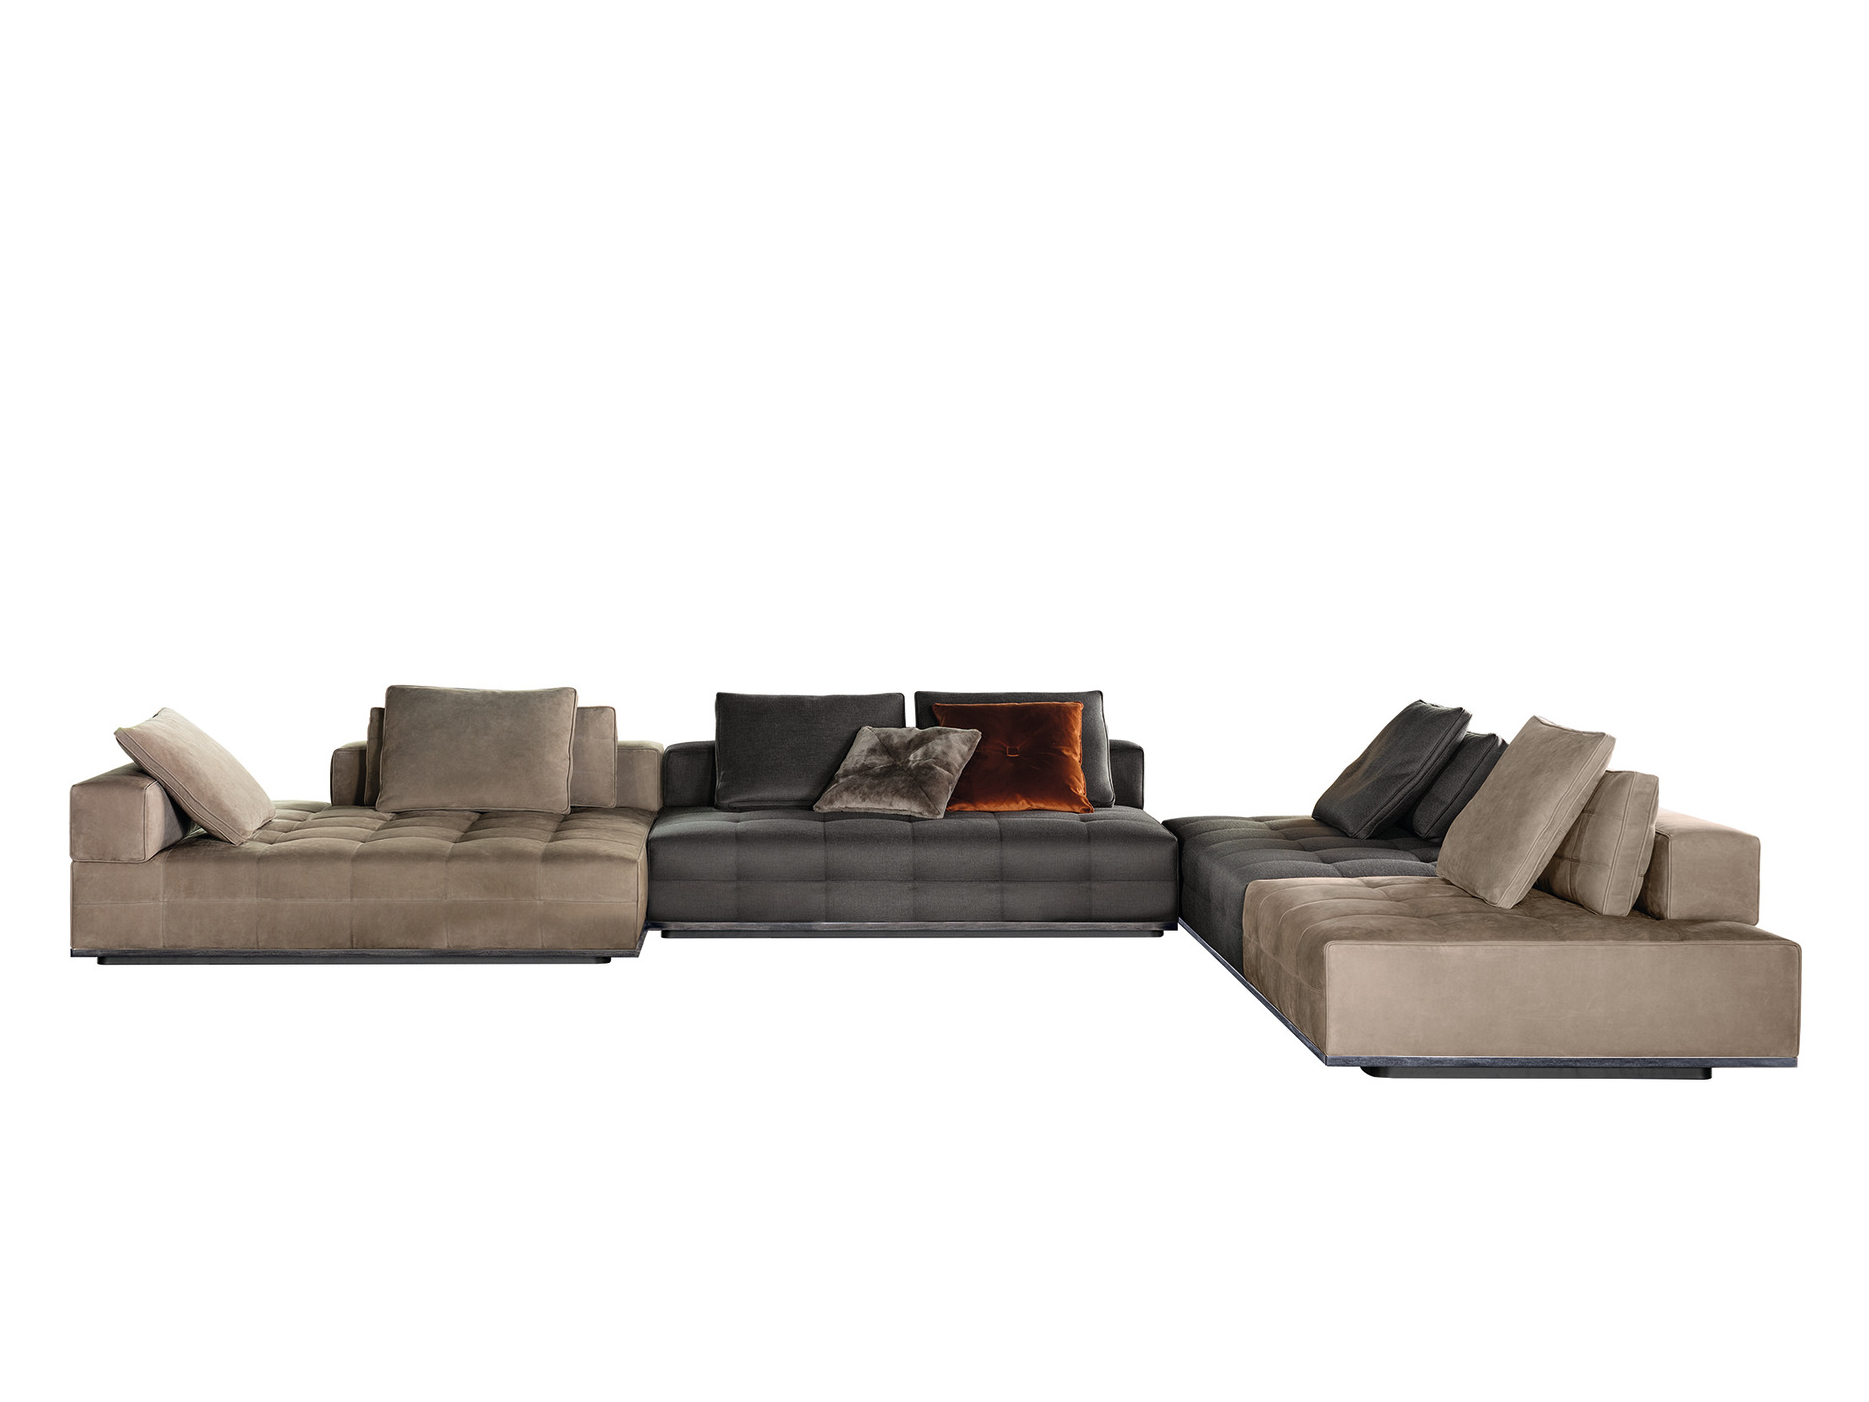 lawrence sofa lawrence collection by minotti. Black Bedroom Furniture Sets. Home Design Ideas